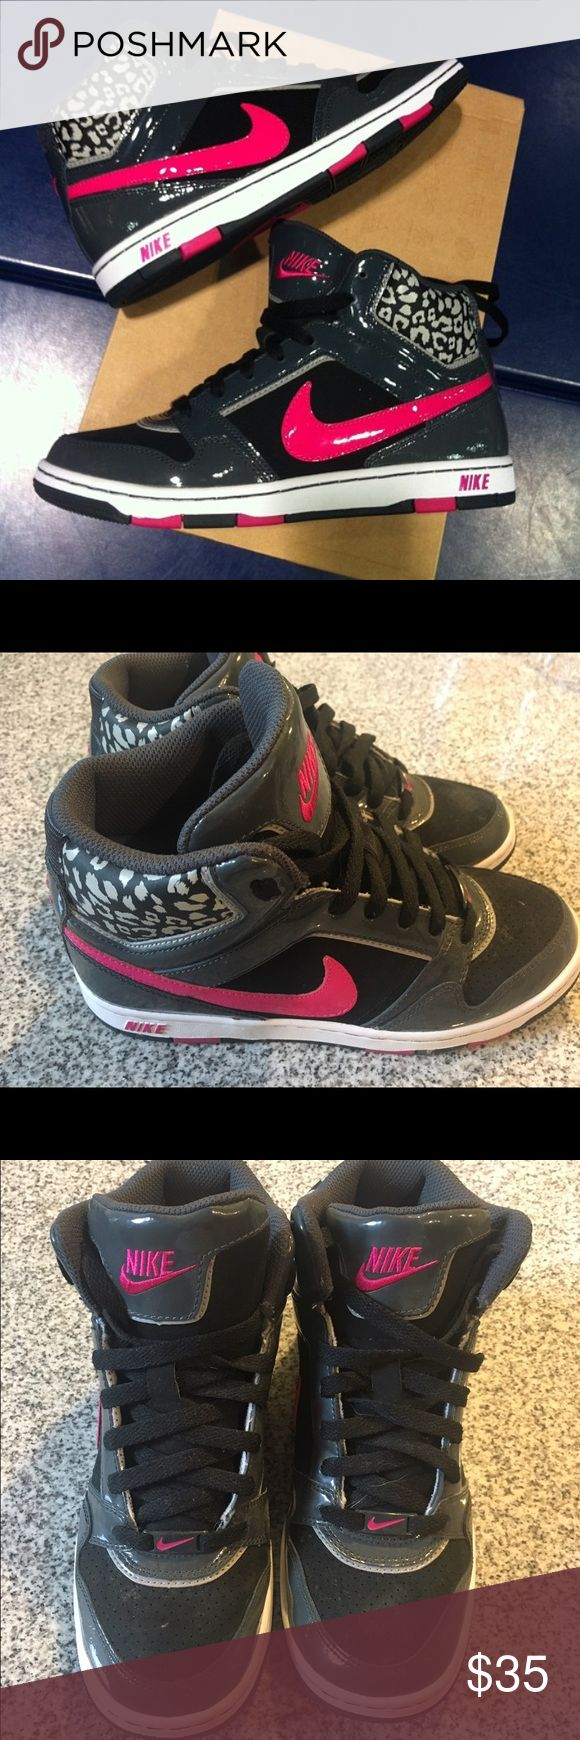 Nike Leopard High Top Sneakers Cheetah Gently used Nike High Too Sneakers.  Black and Pink with silver Cheetah/Leopard print.  Size 7. Nike Shoes Sneakers